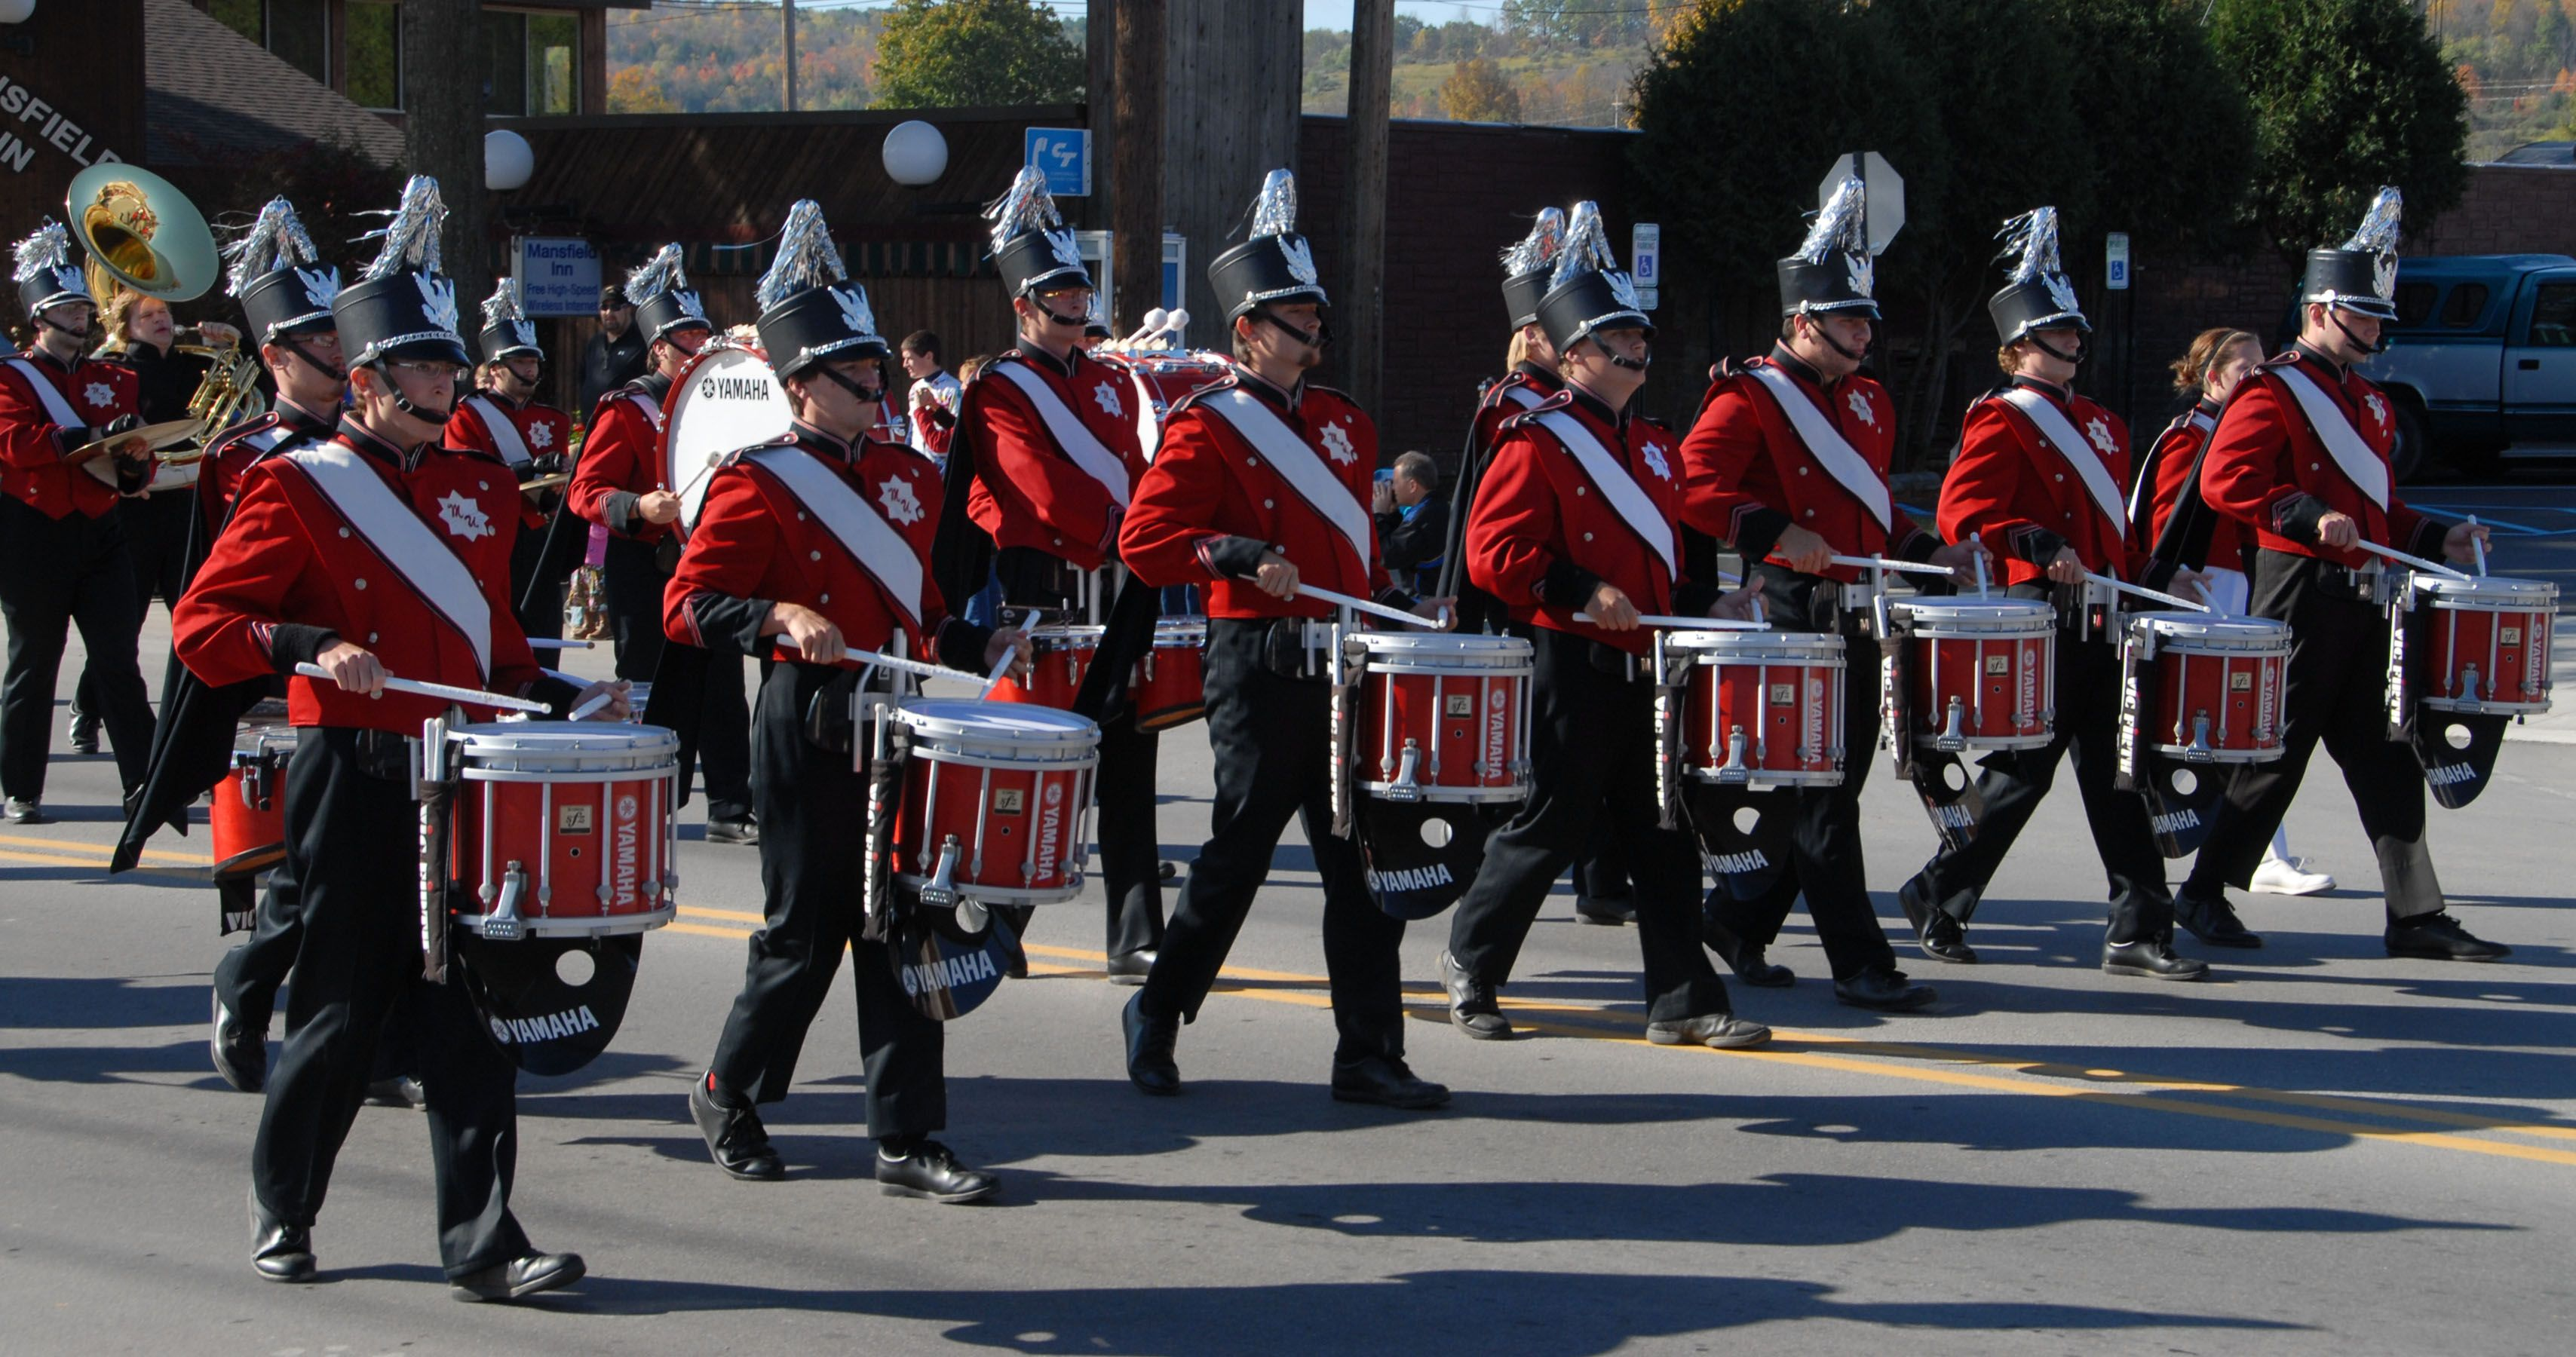 Marching Bands | MU Marching Band to Perform at Summer Olympics ...